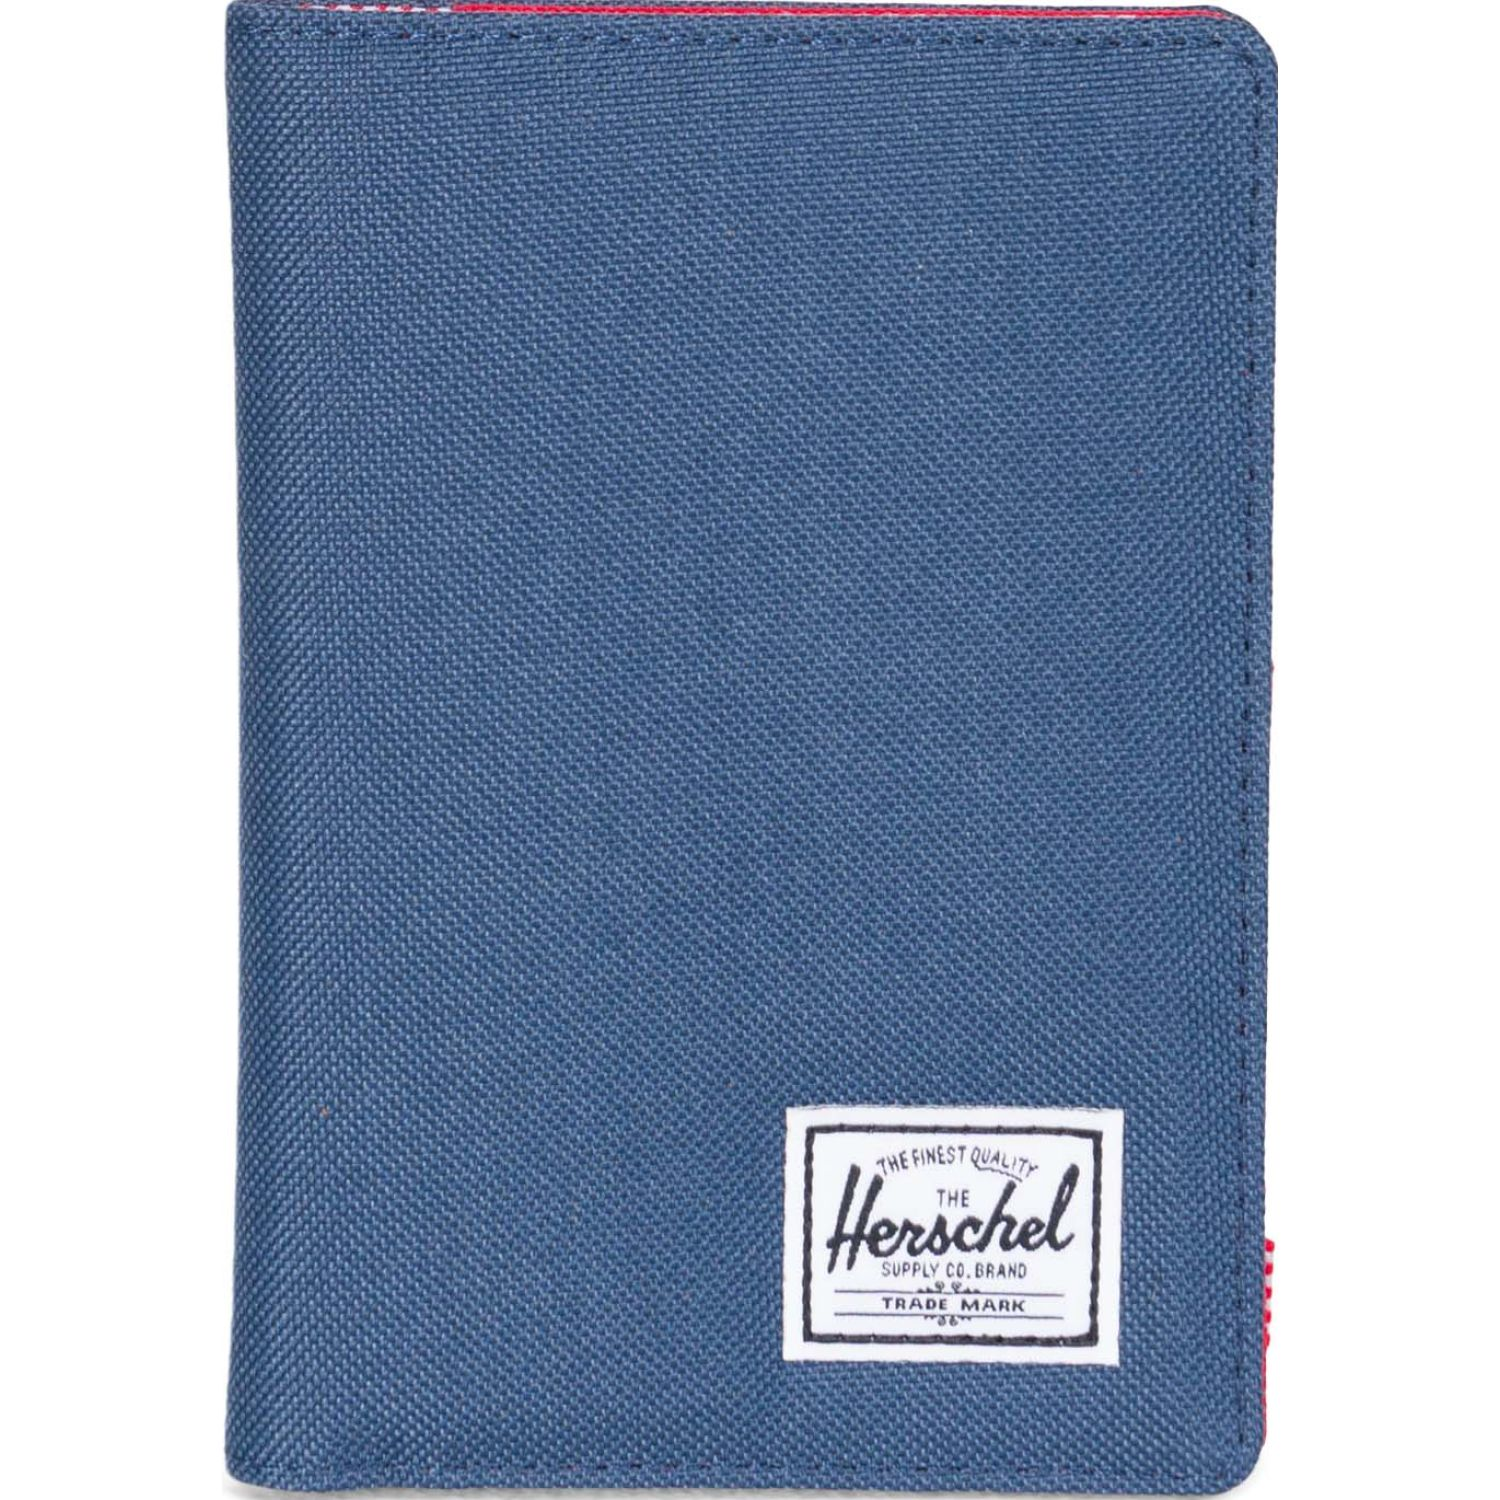 HERSCHEL Raynor Passport Holder RFID Azul / rojo Porta DocuHombretos